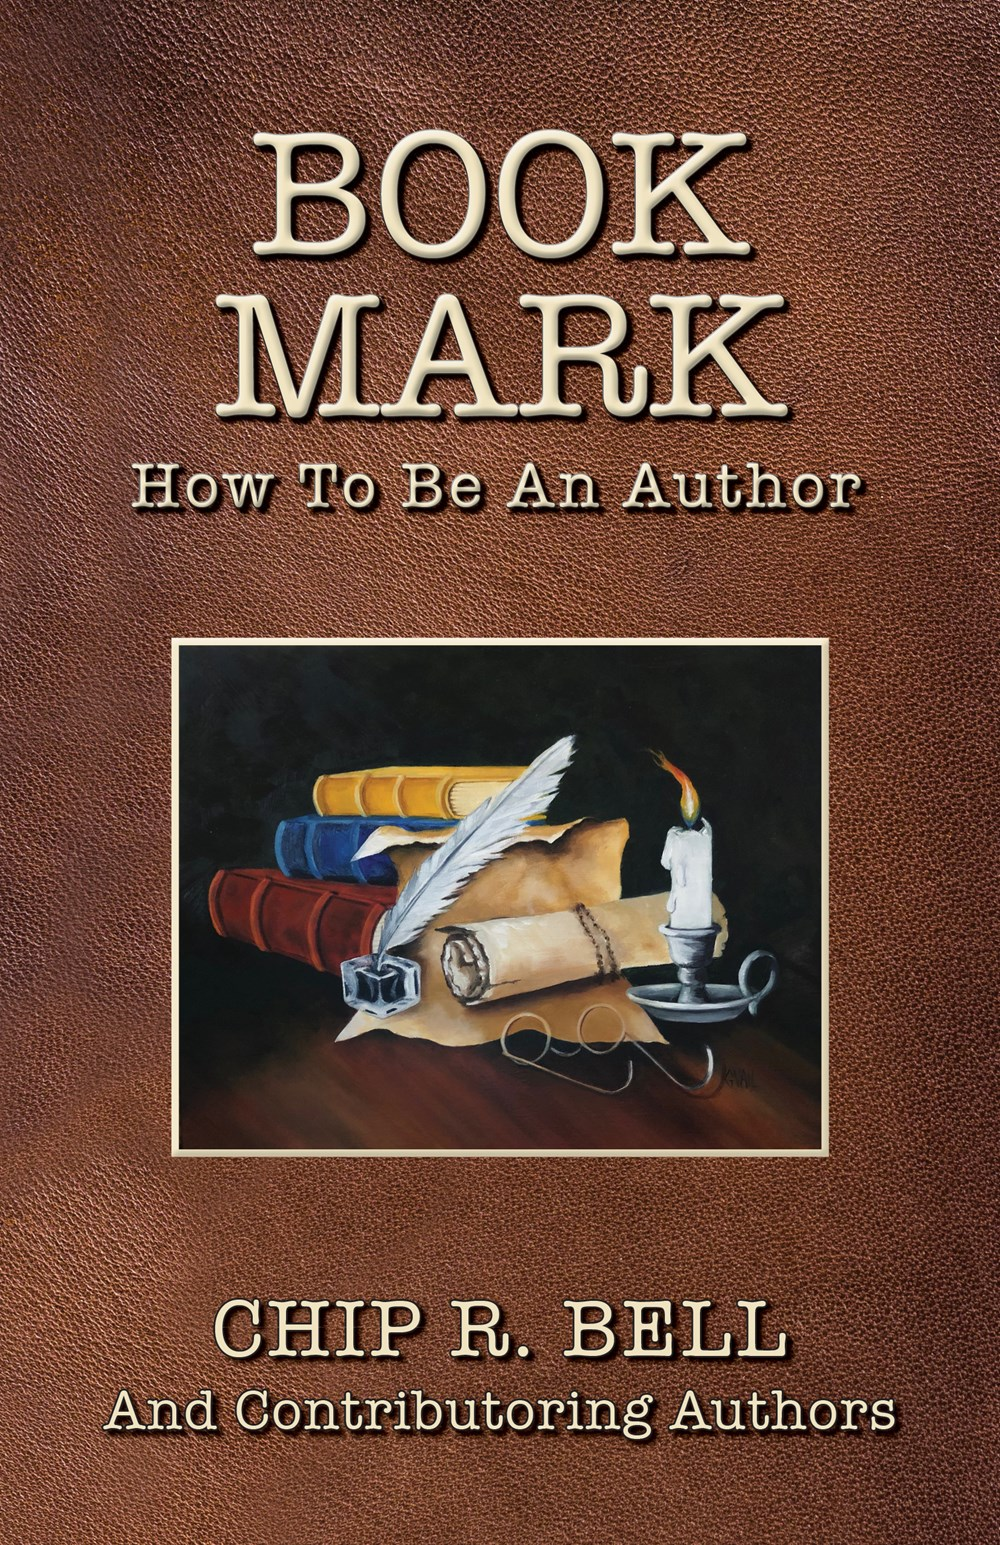 Book Mark How to Be an Author